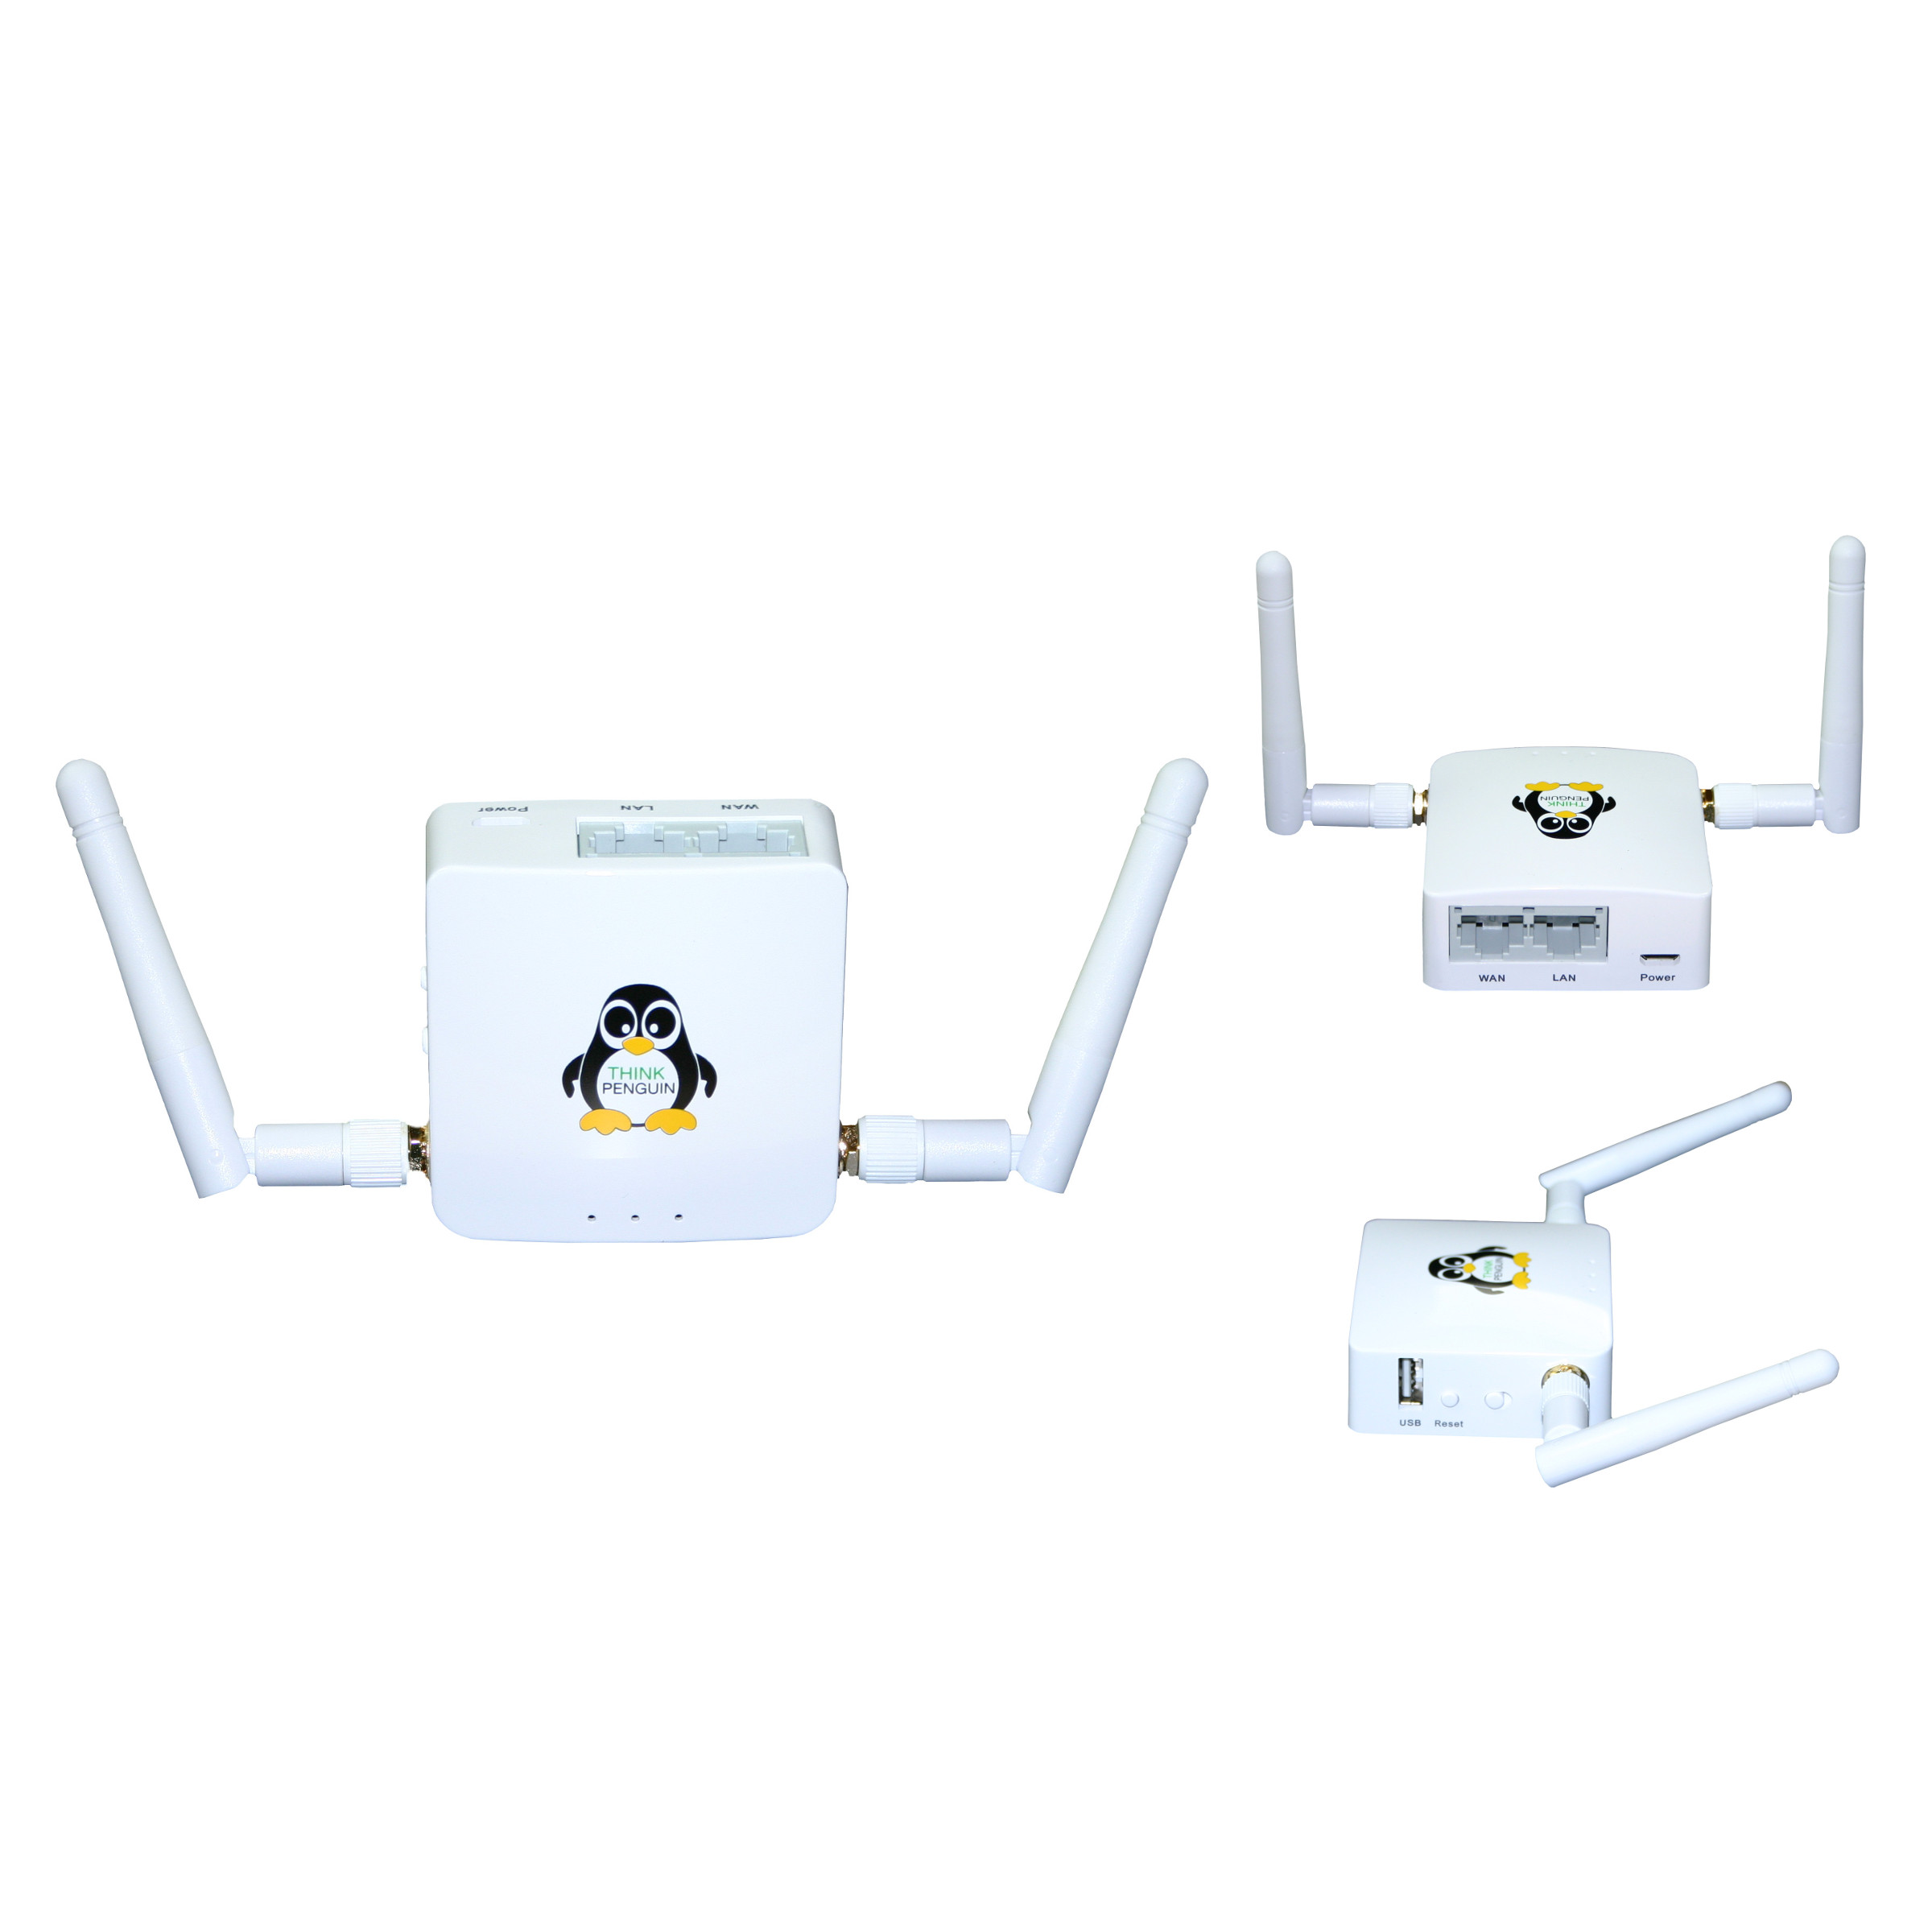 Free Software Wireless-N Mini Router v2 (TPE-R1200)